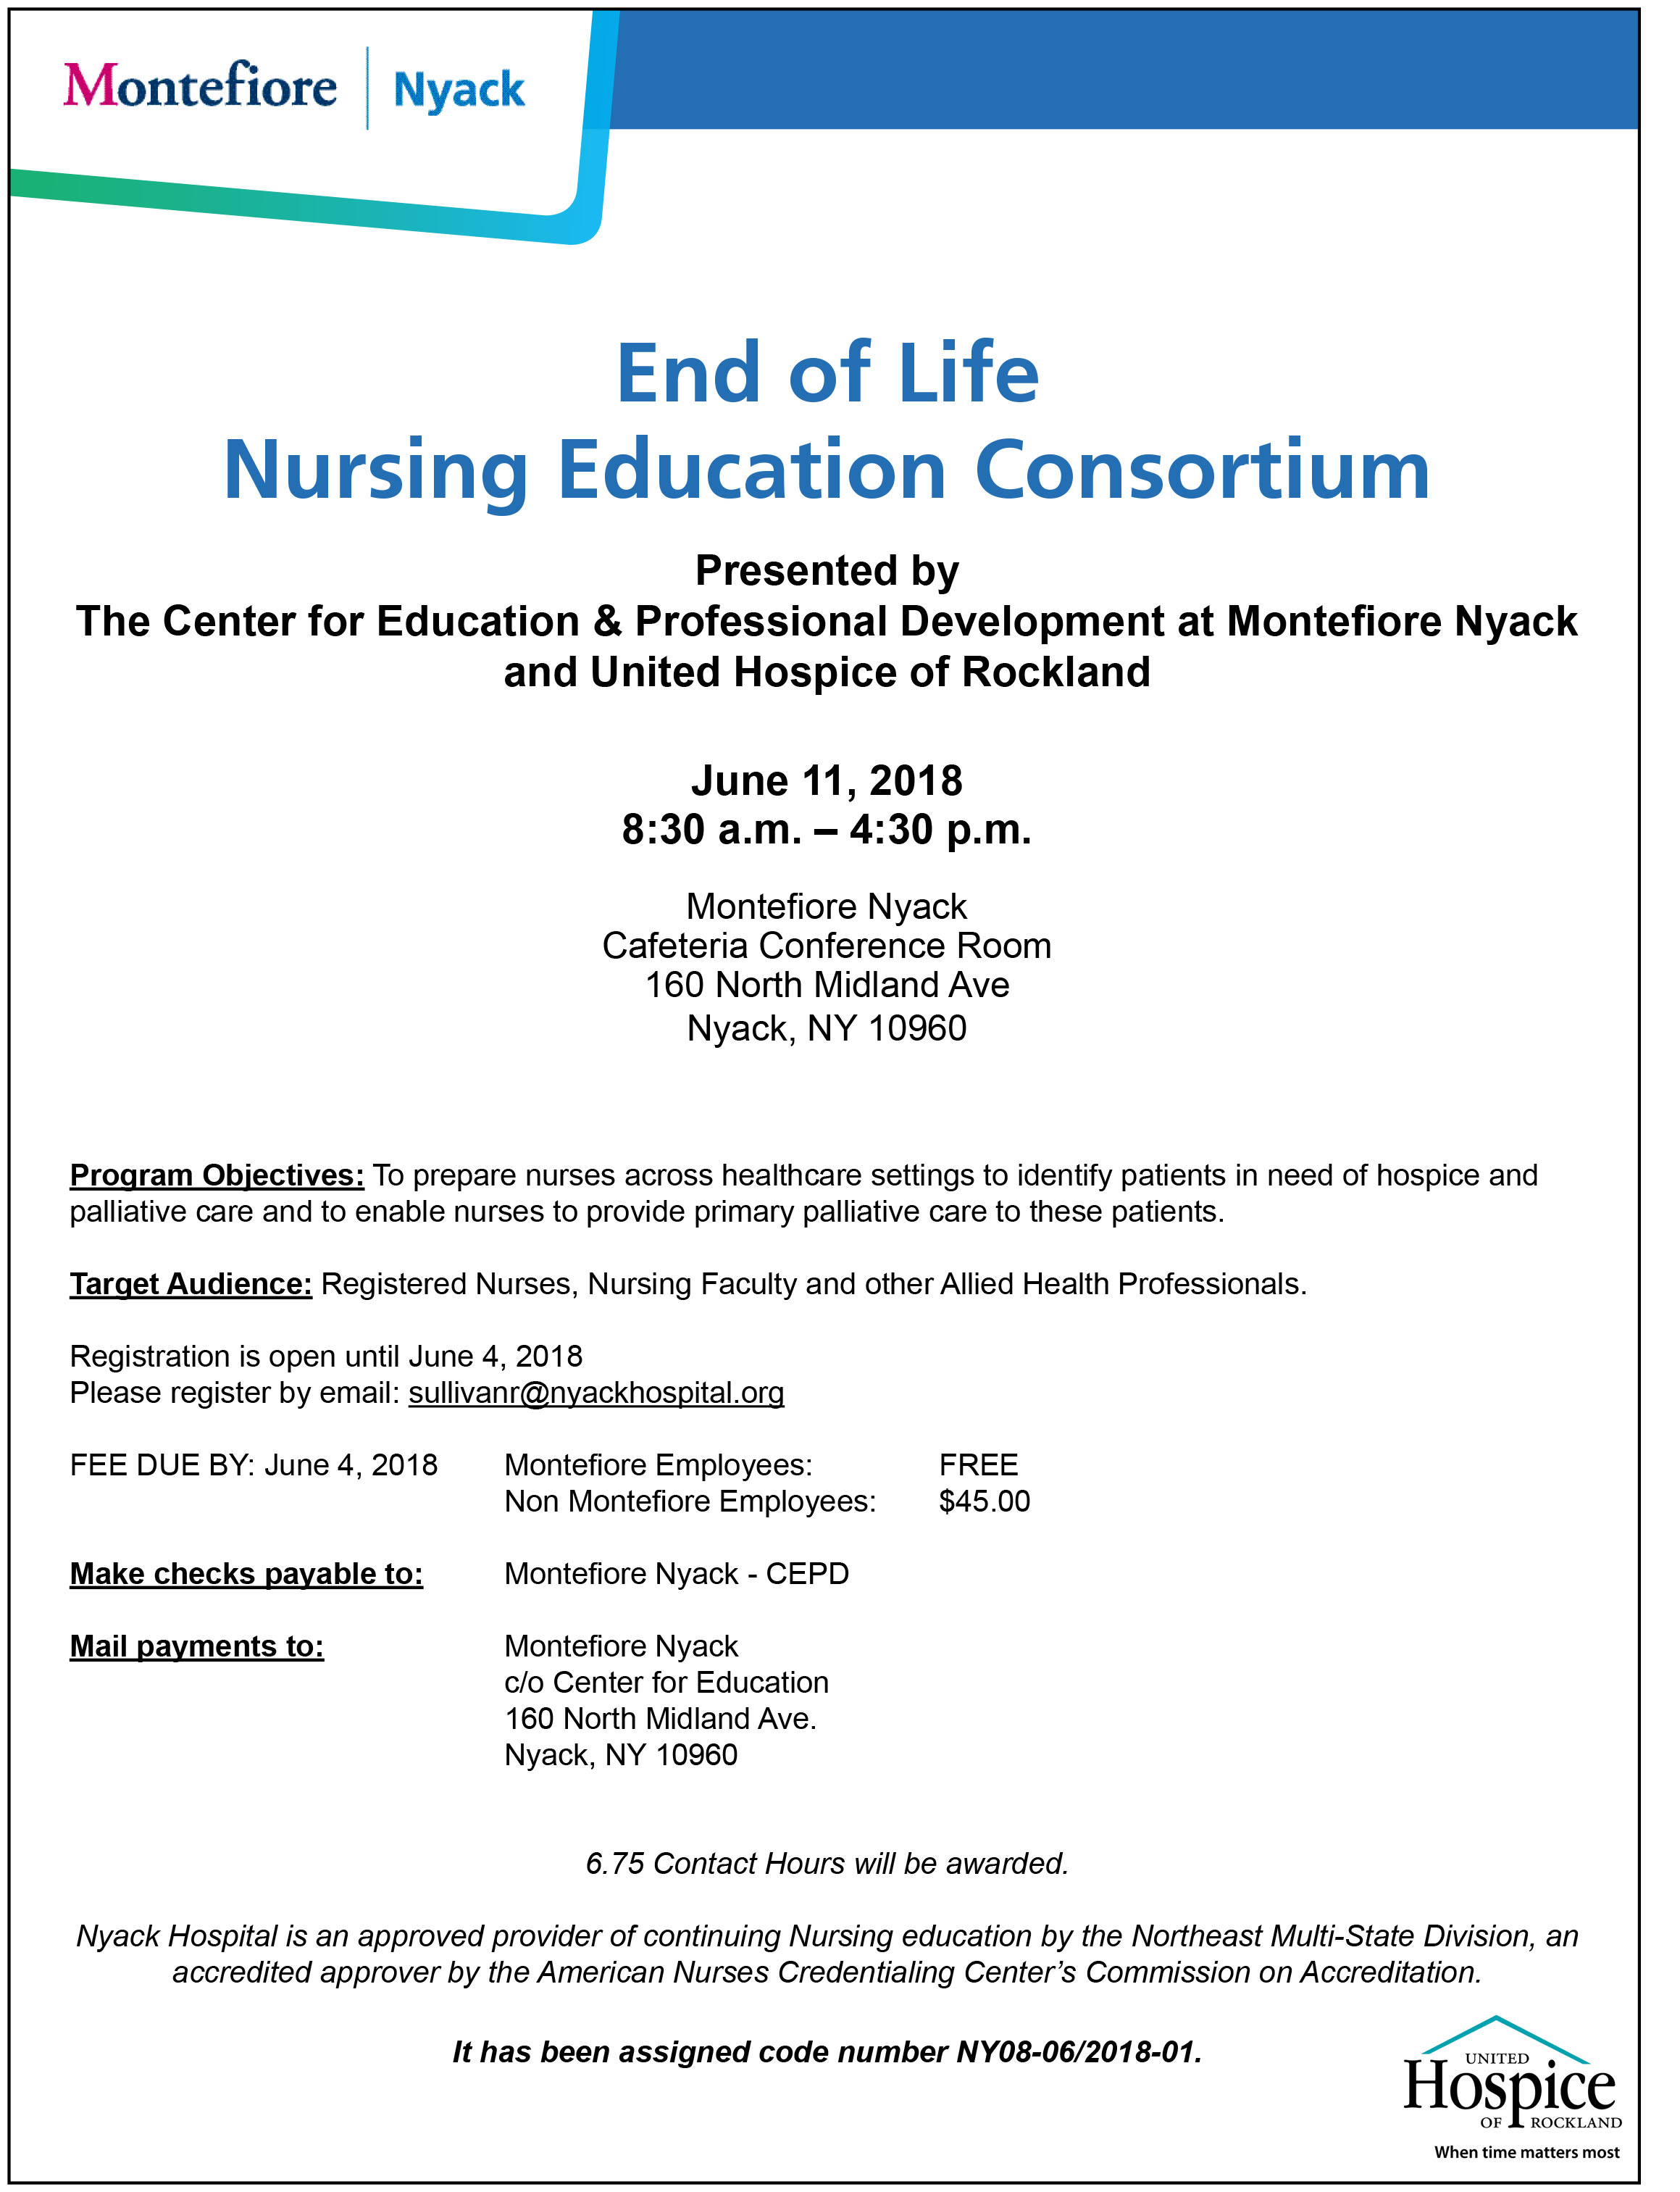 End of Life Symposium_MN.jpg